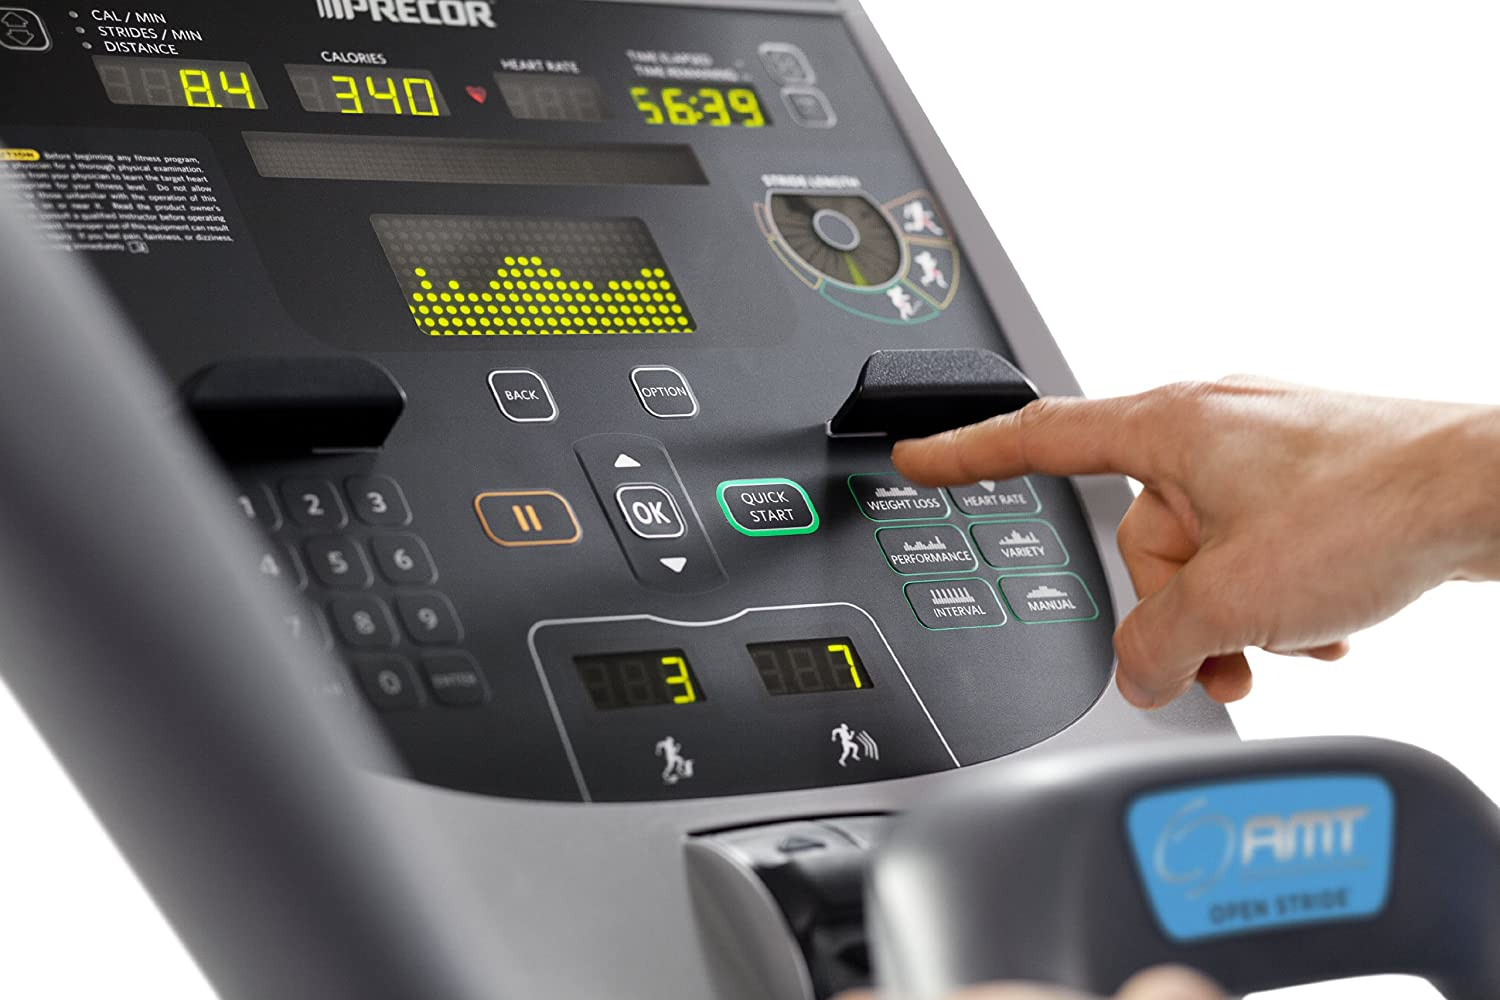 Precor AMT 835 Commercial Series Adaptive Motion Trainer console